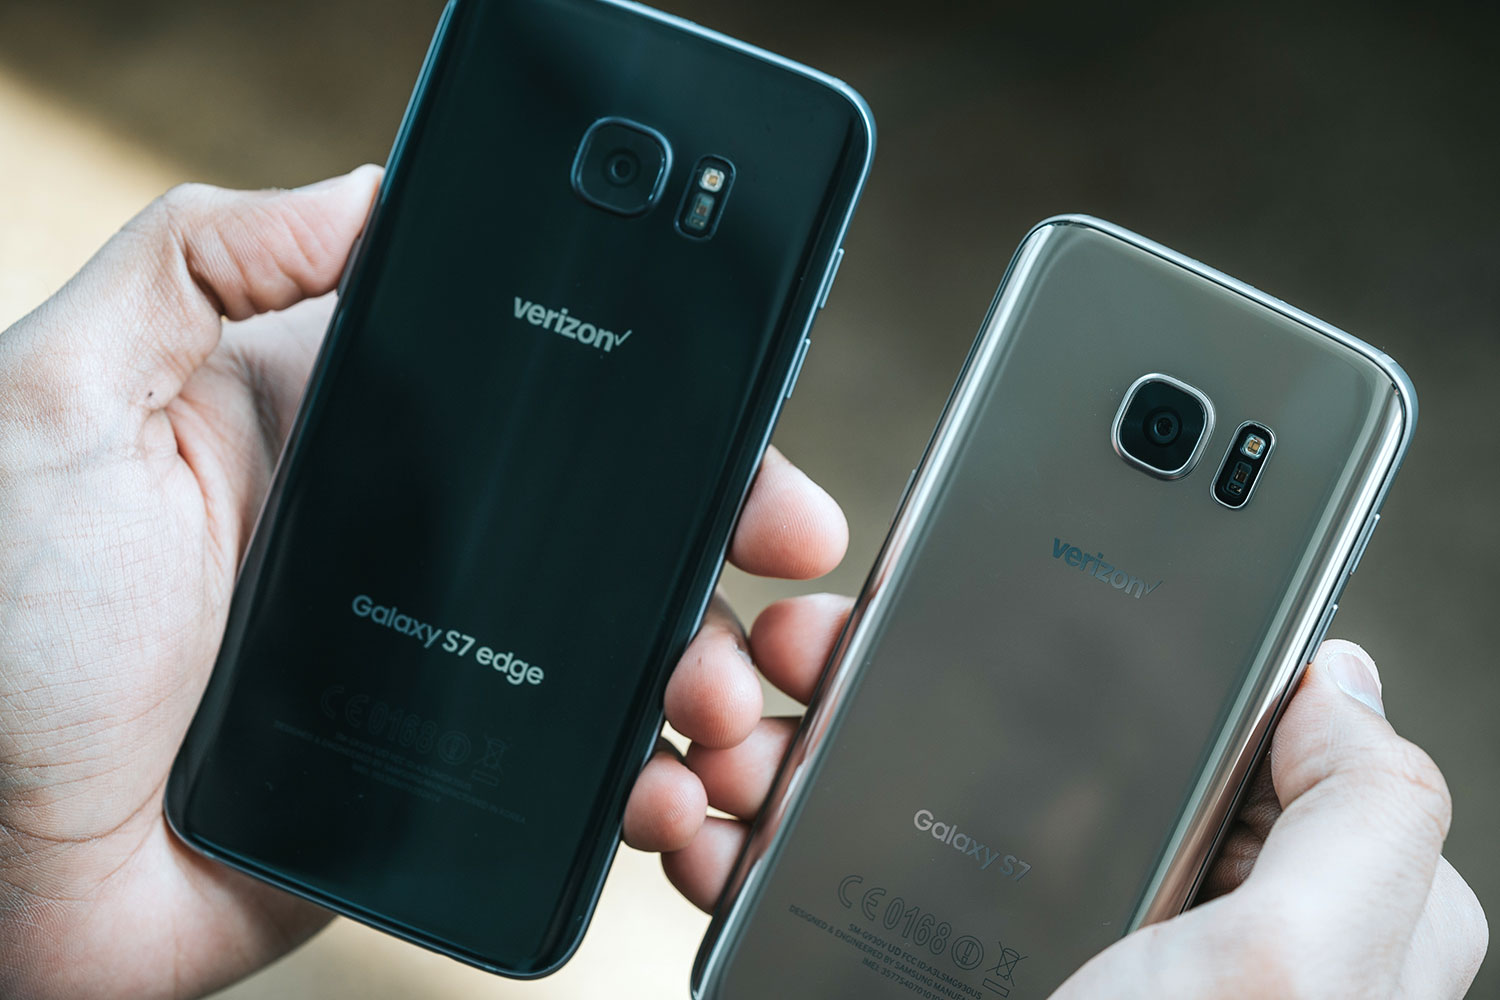 Samsung Overcomes Note 7 Fallout To Deliver Strongest Q4 Yet